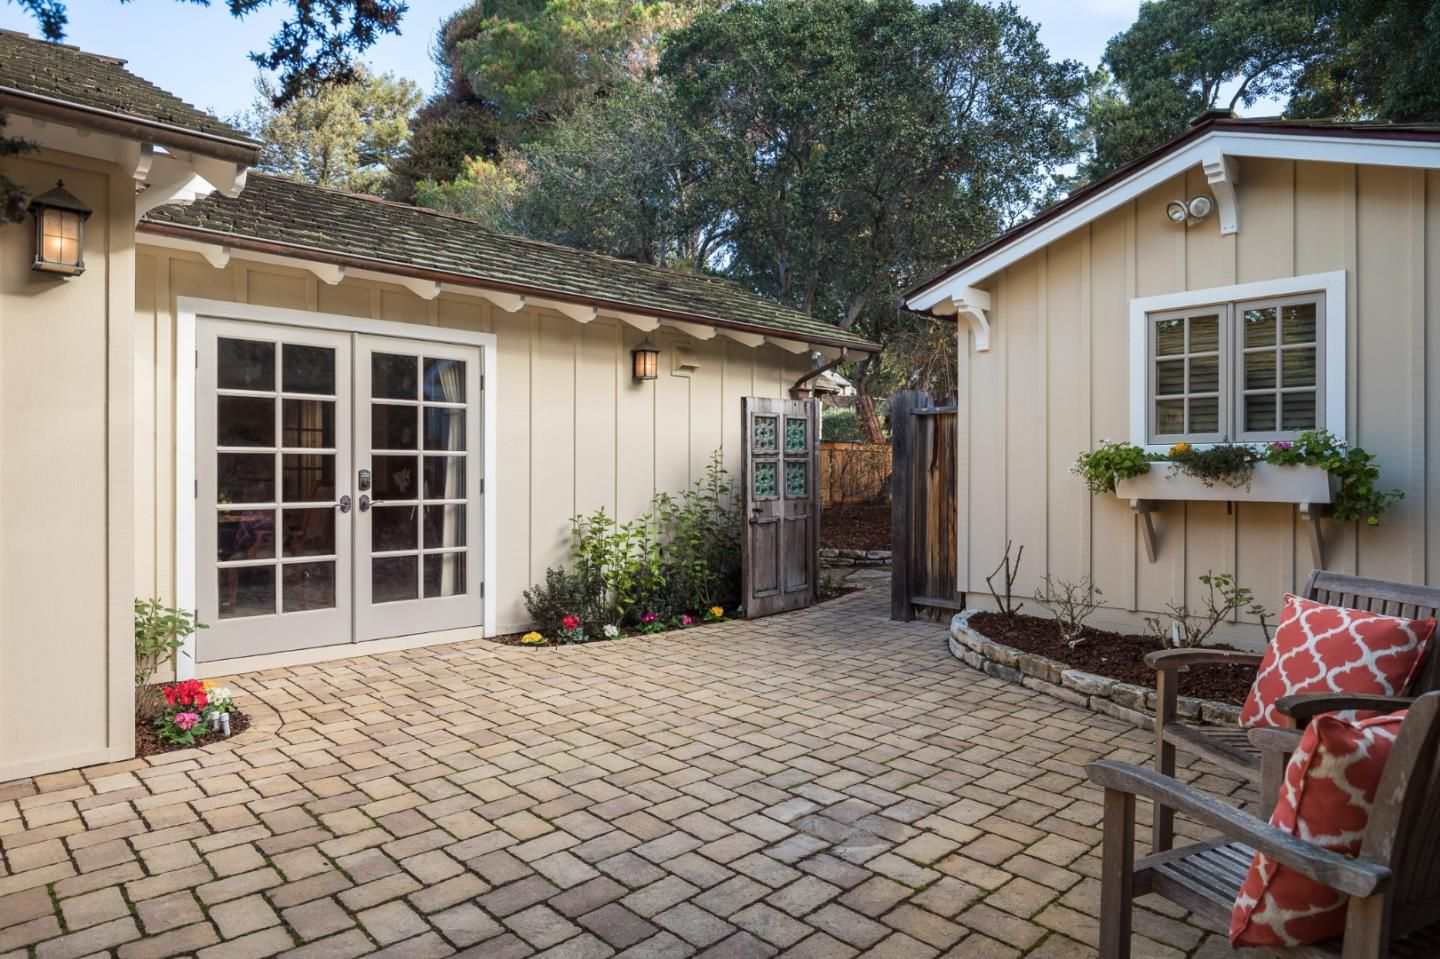 Classic Board and Batten Cottage in Carmel-by-the-Sea for sale - Enter through the elegant gateway doors to the open patio